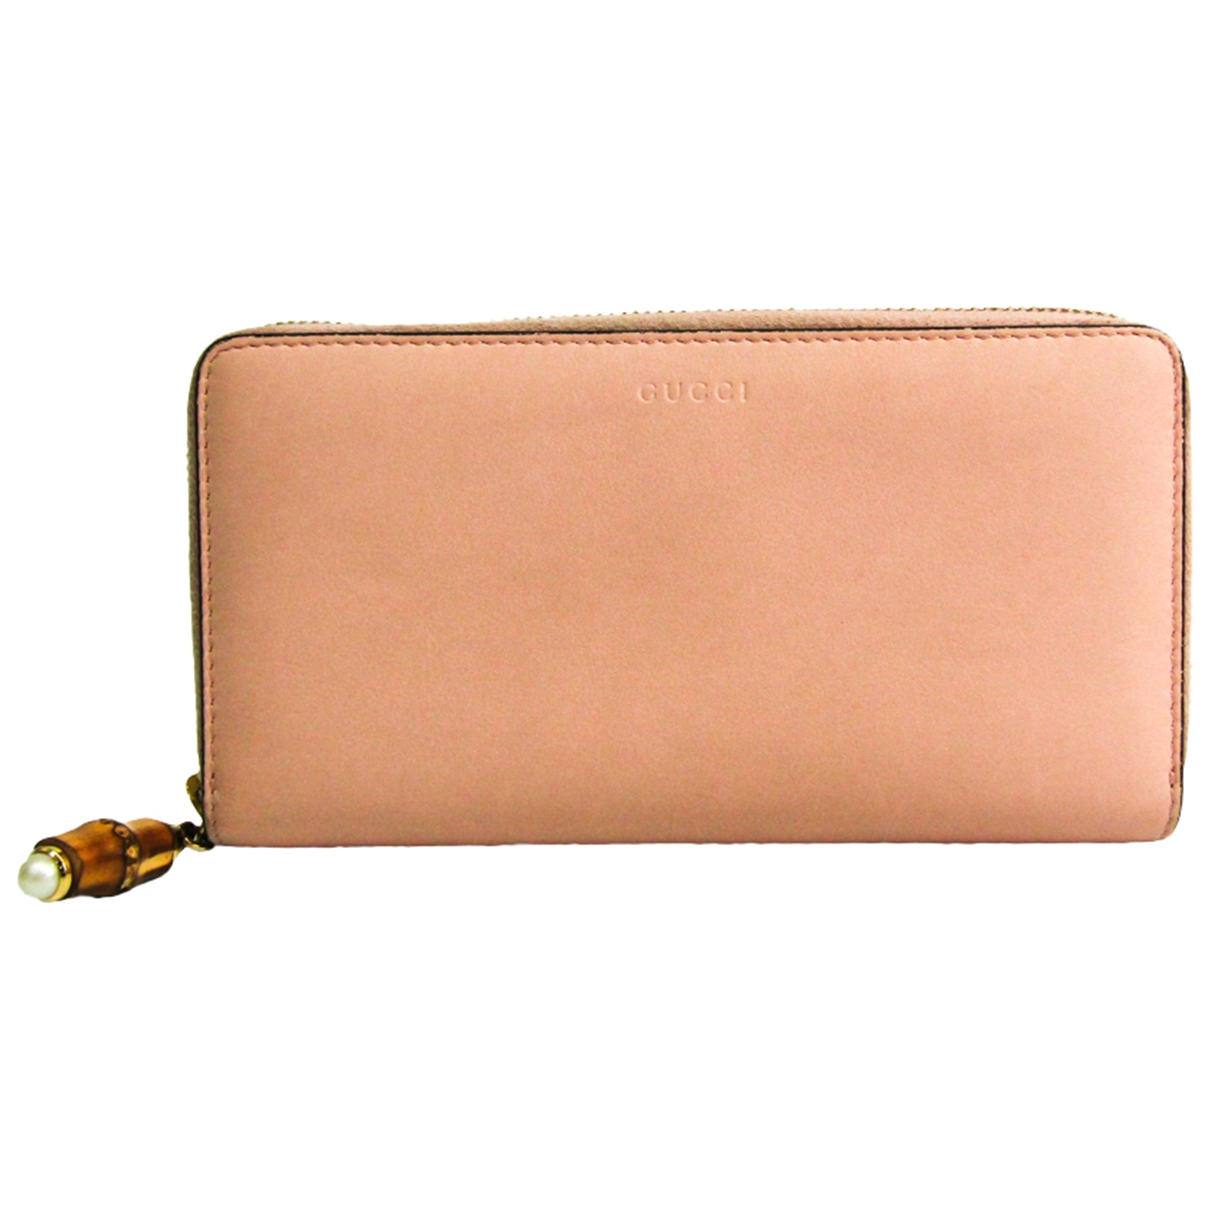 Gucci \N Pink Leather wallet for Women \N